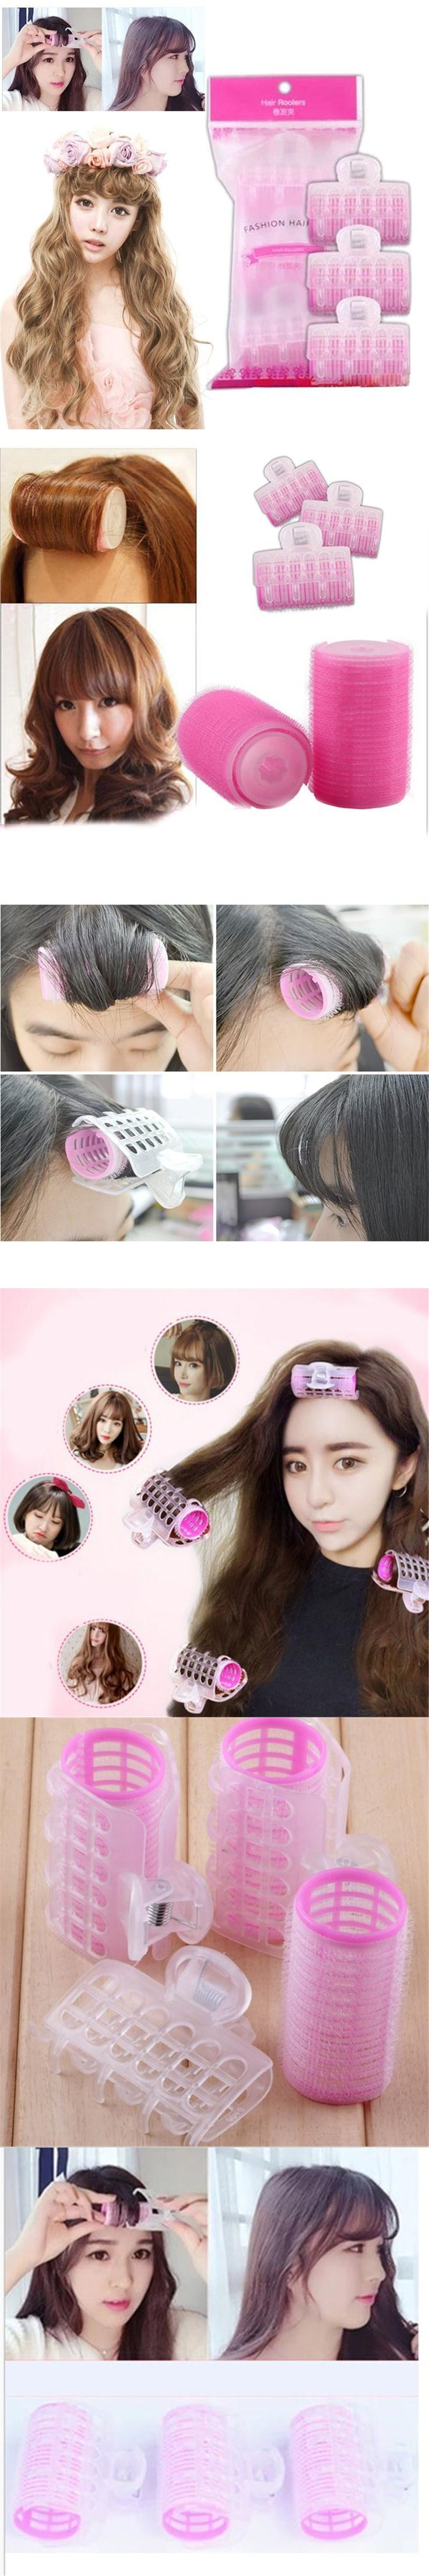 Plastic Hair Curler Roller Large Grip Styling Roller Curlers Magic Hair Curlers Tools Styling Home Use Hair Rollers